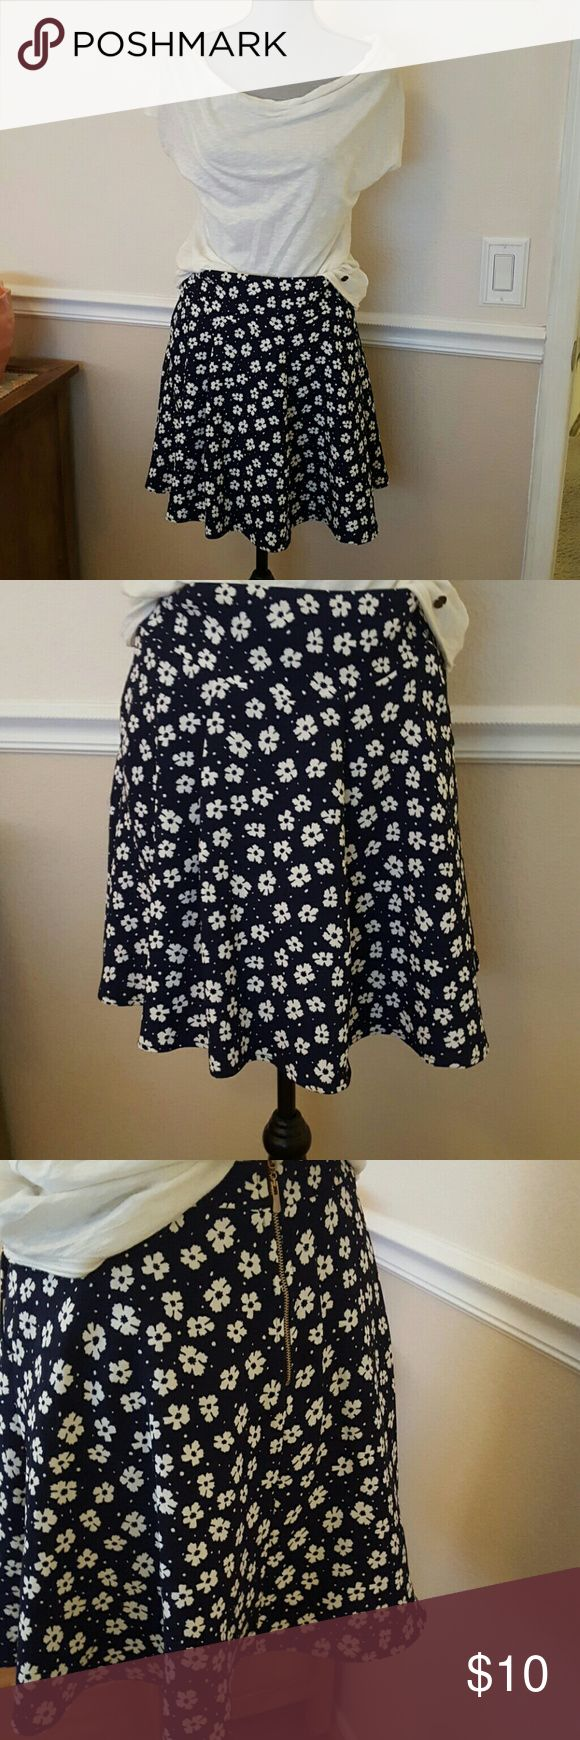 Skirt Blue skirt with white flowers zips in back size m  great condition  shown with Tommy girl top Skirts Mini